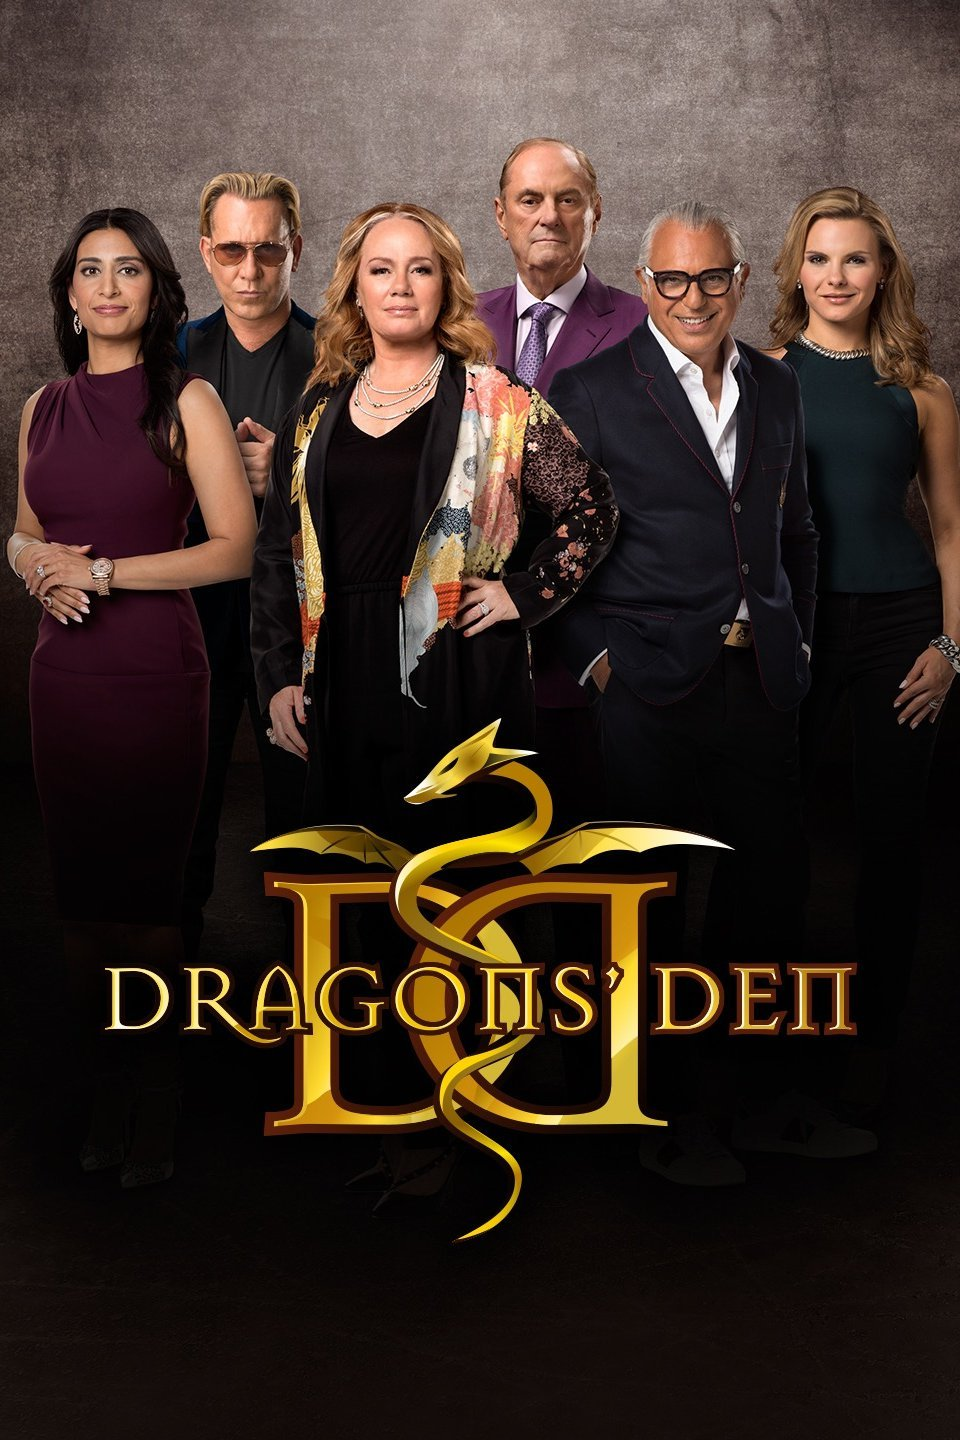 Dragons' Den - Season 16 Episode 11 - Christmas Special